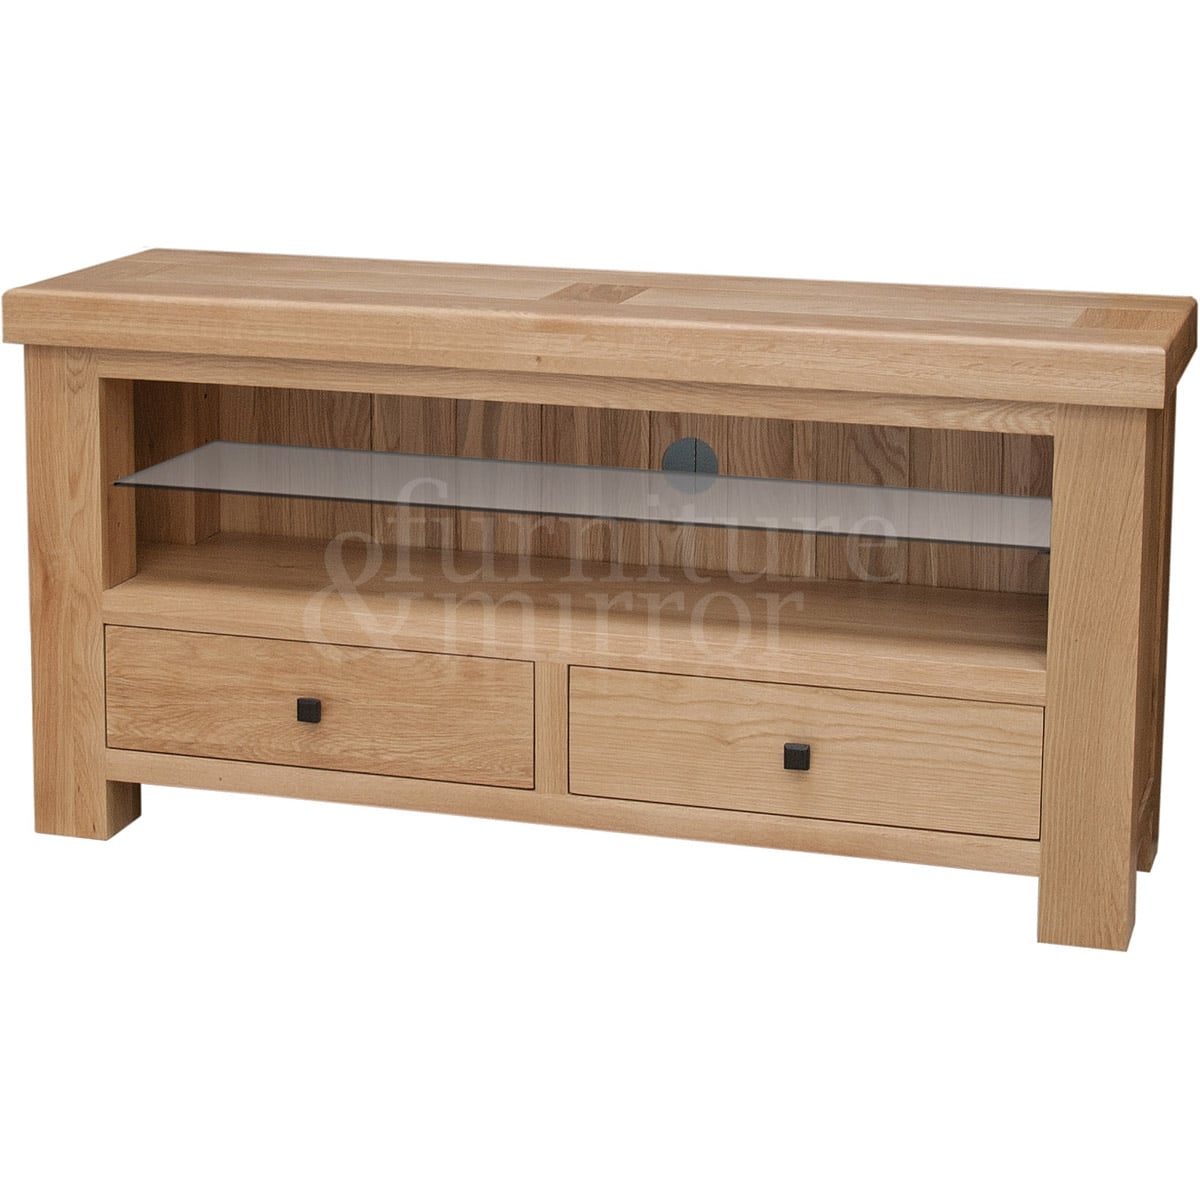 Tv Unit Chutv Toulouse Bedroom Furniture White Bedroom Furniture